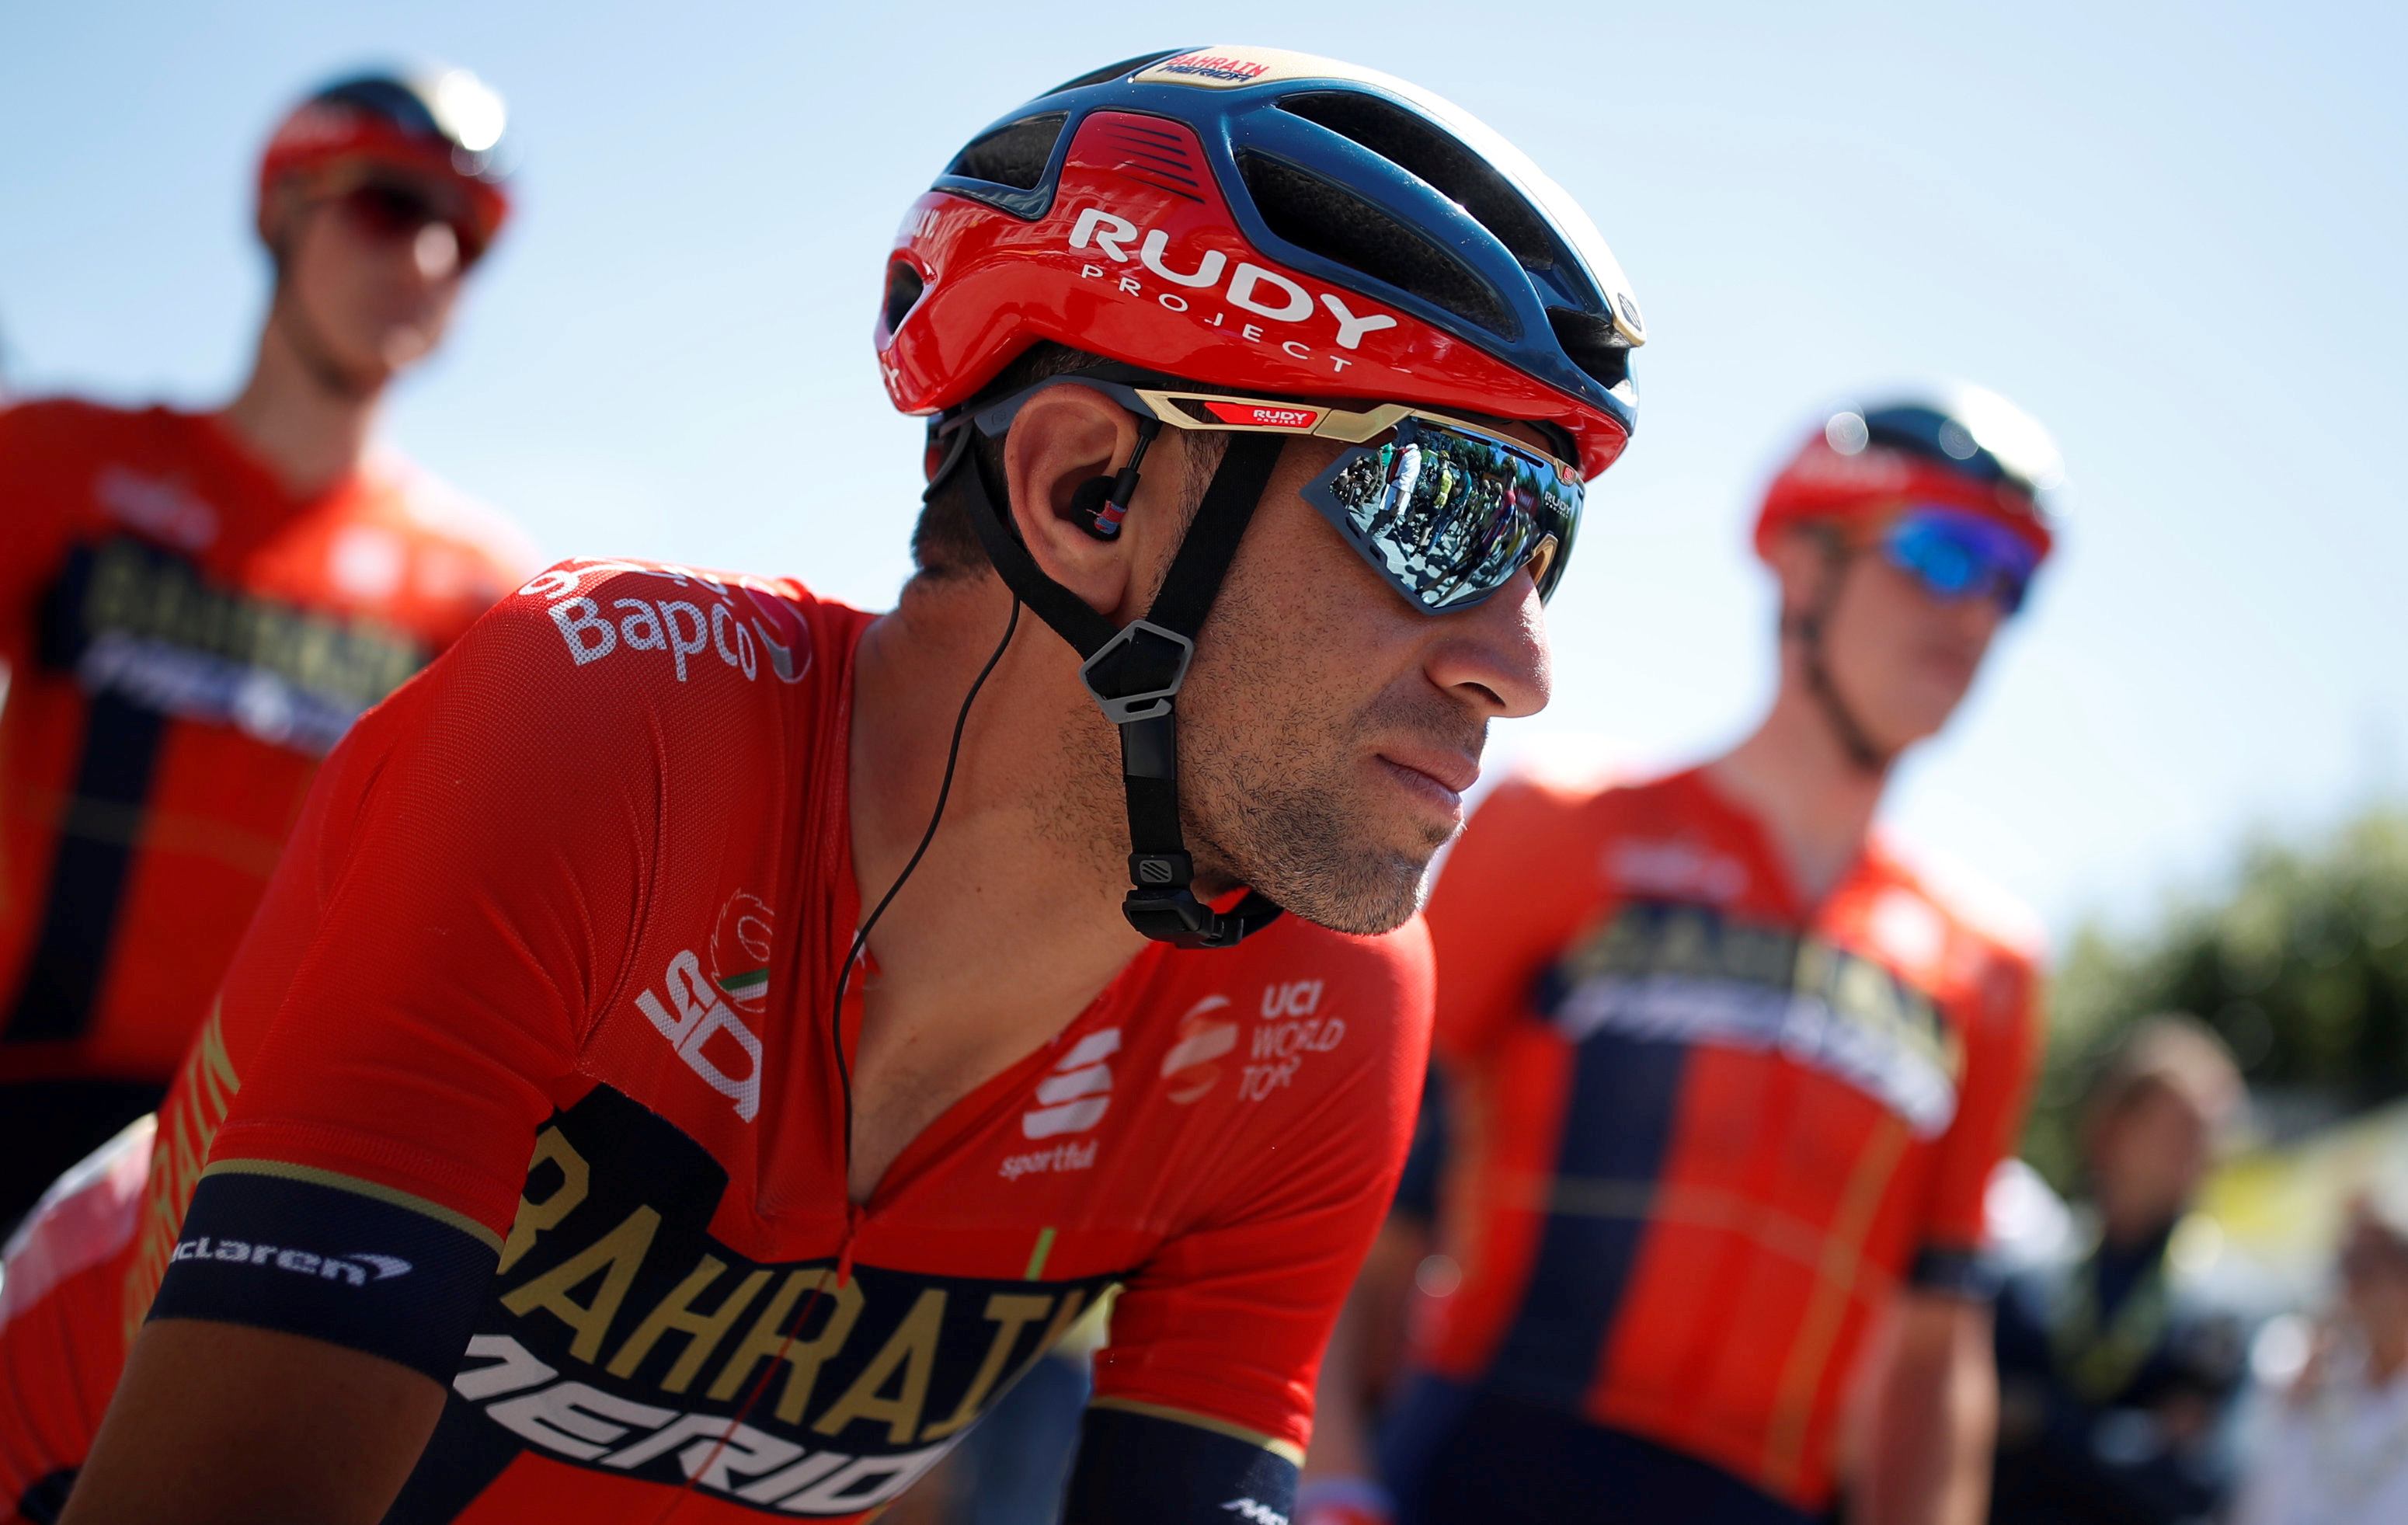 Nibali not giving up on Tour ambitions just yet: coach